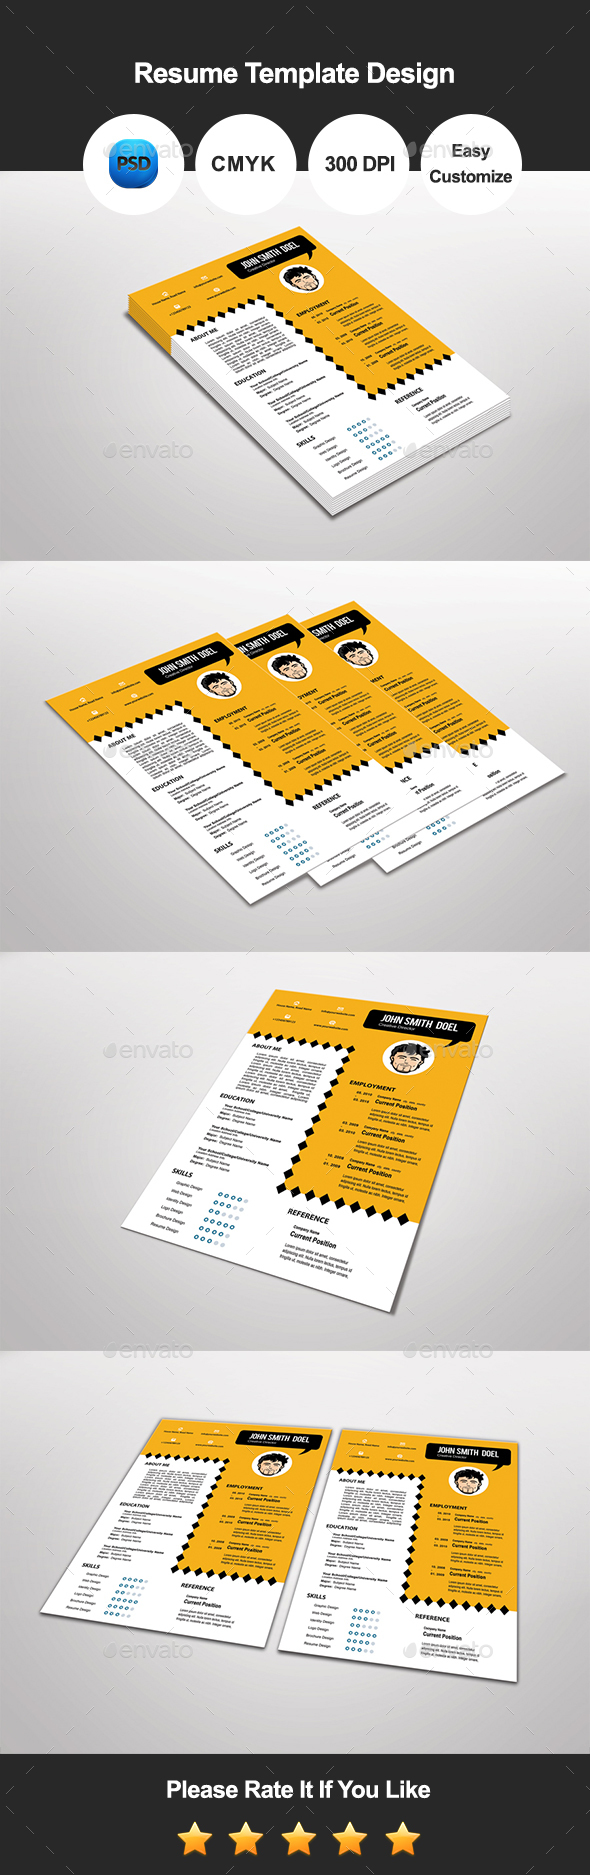 Orala Resume Template Design - Resumes Stationery